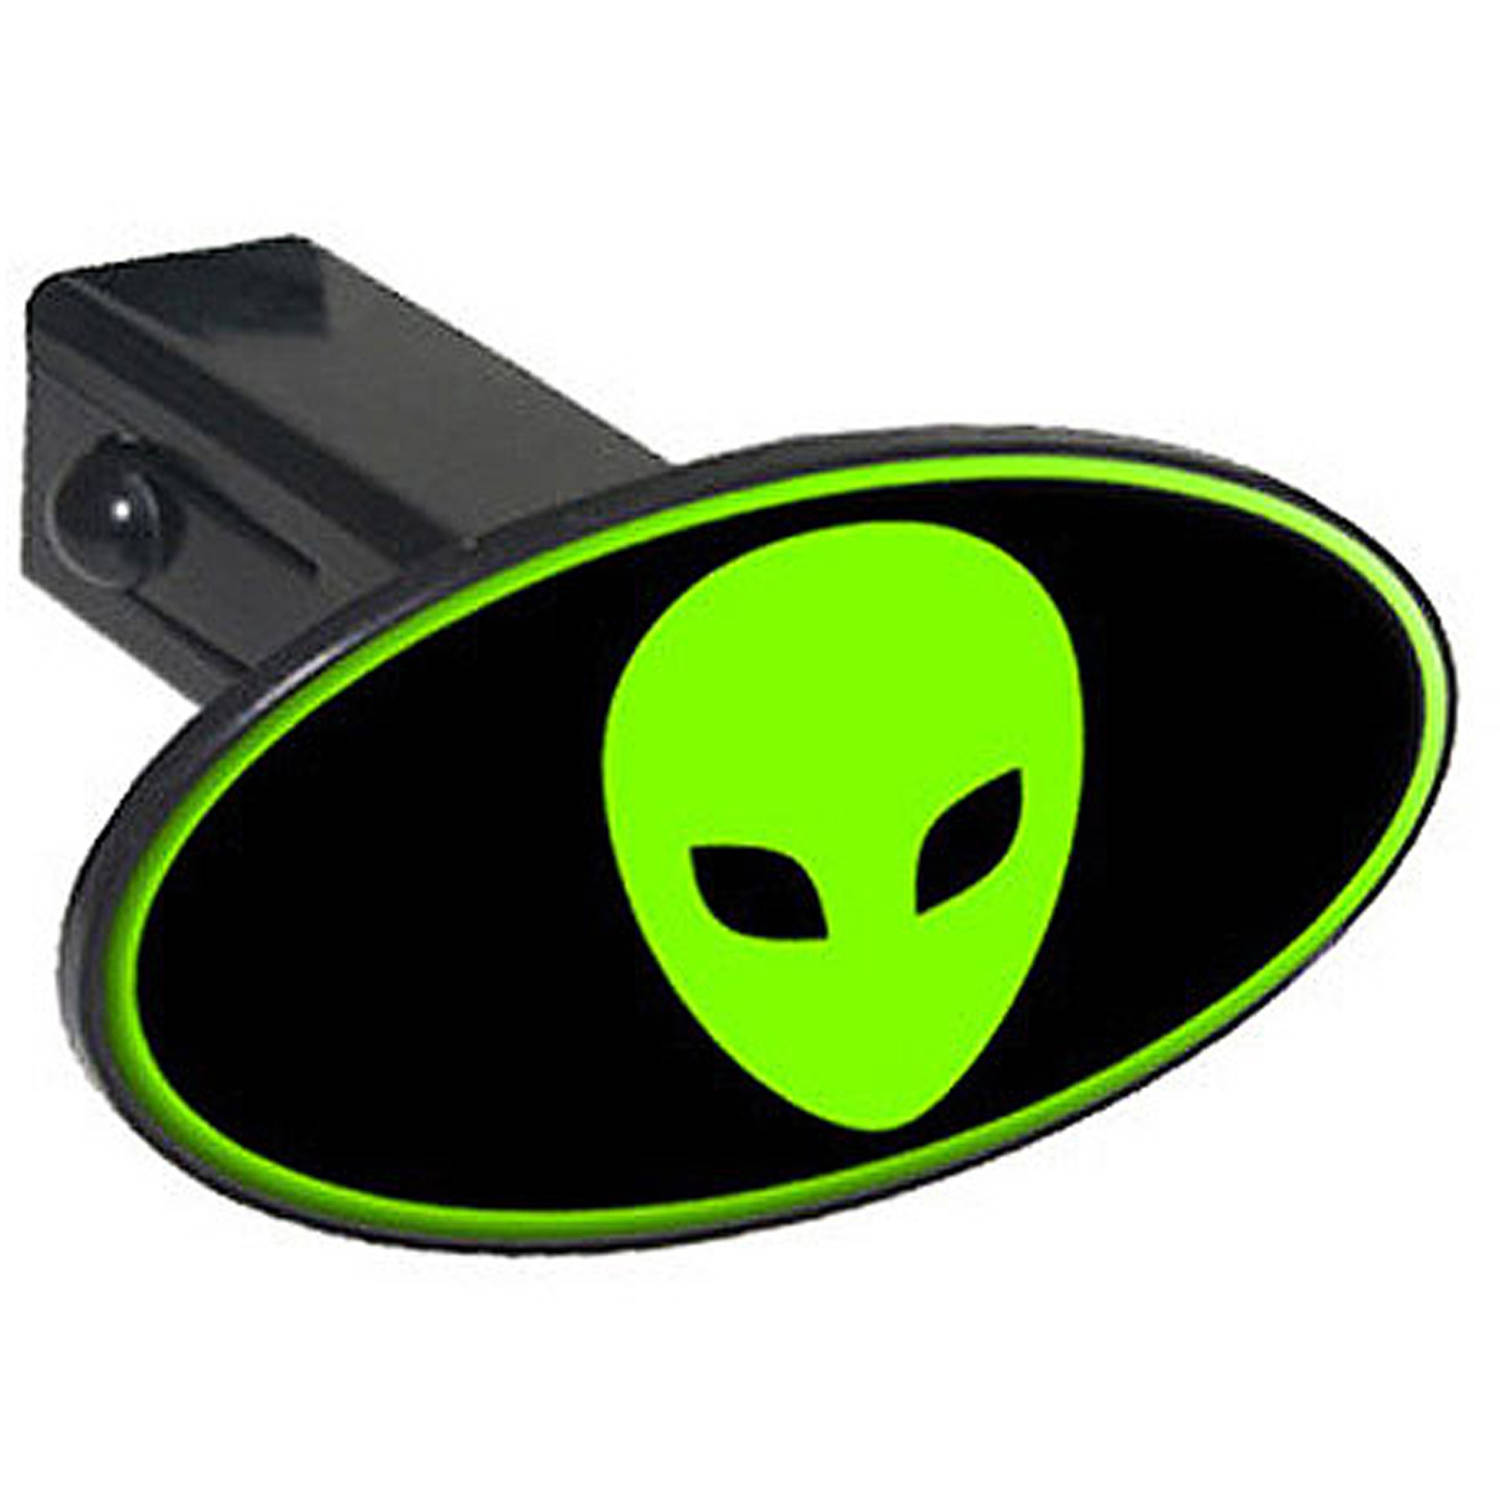 """Alien Head Green On Black 1.25"""" Oval Tow Trailer Hitch Cover Plug Insert by Graphics and More"""